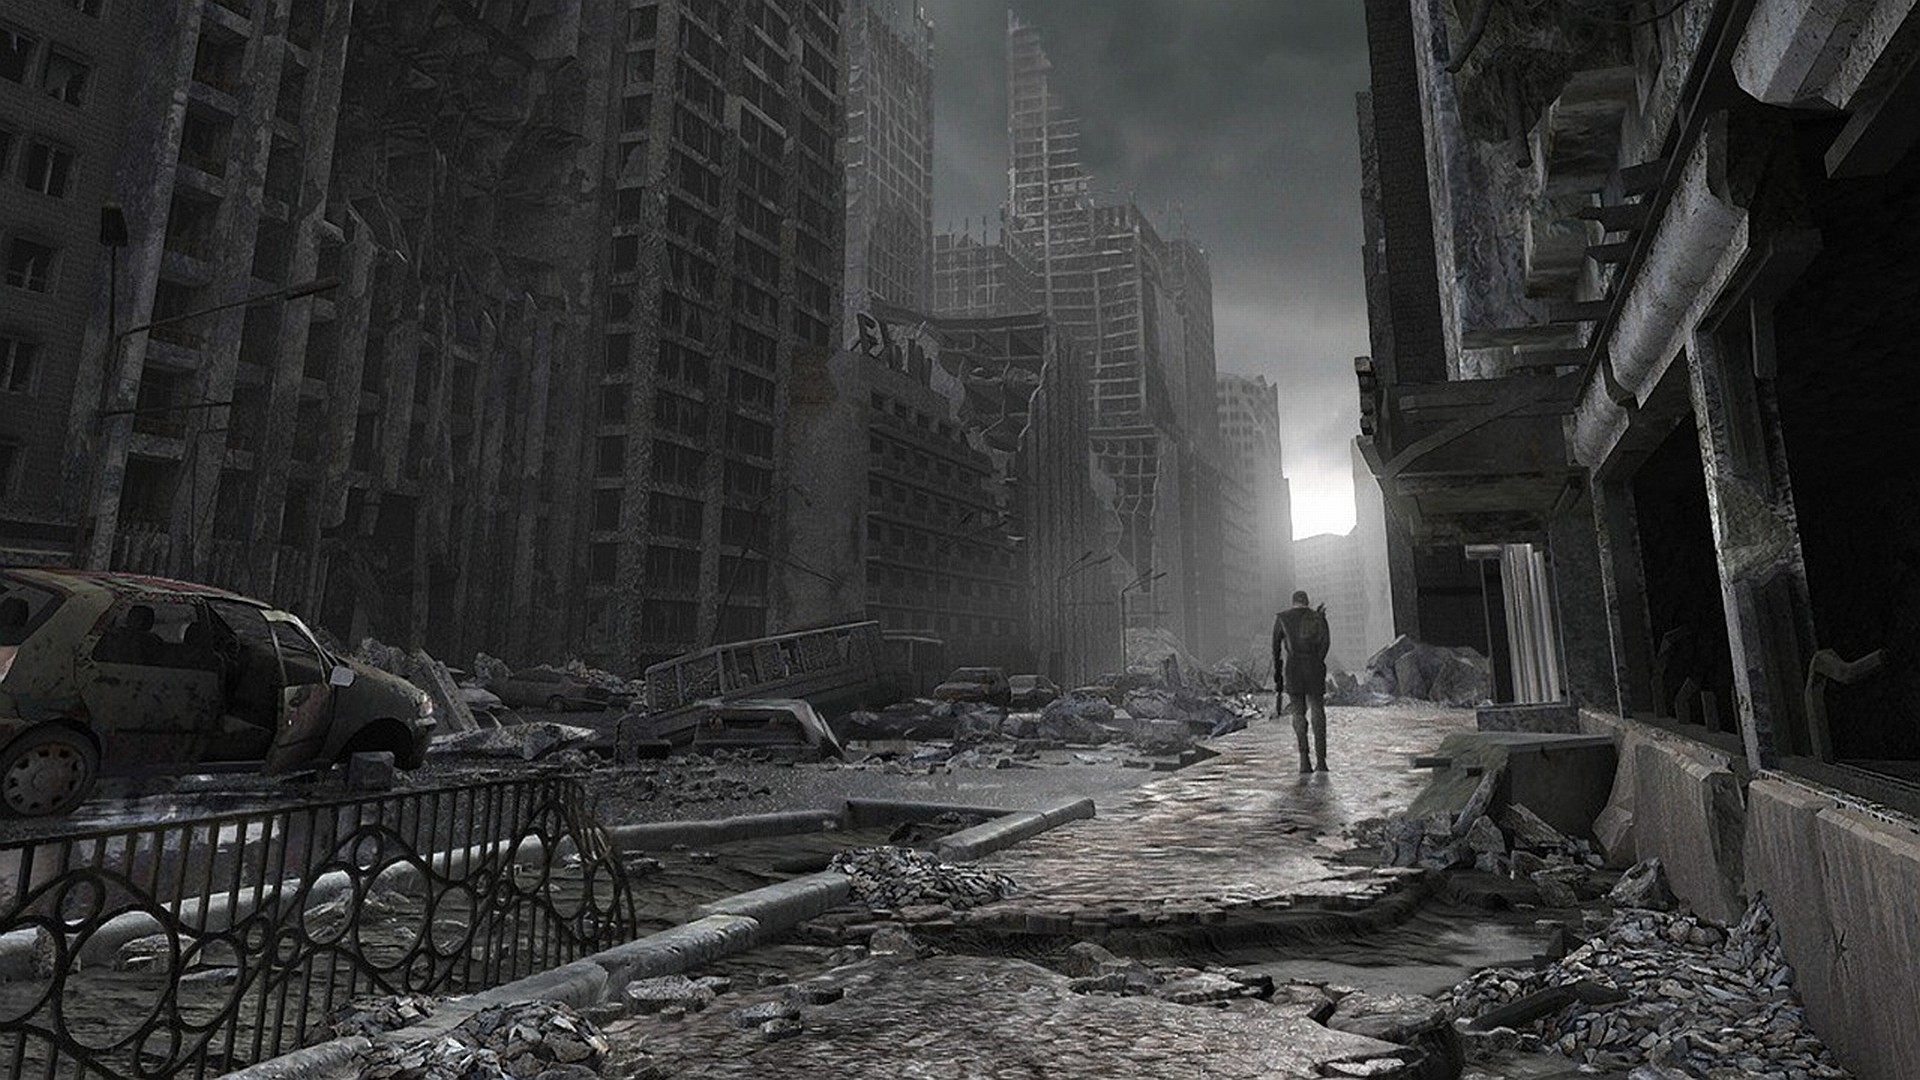 Post Apocalyptic Wallpaper 1 Download Free Awesome Wallpapers For